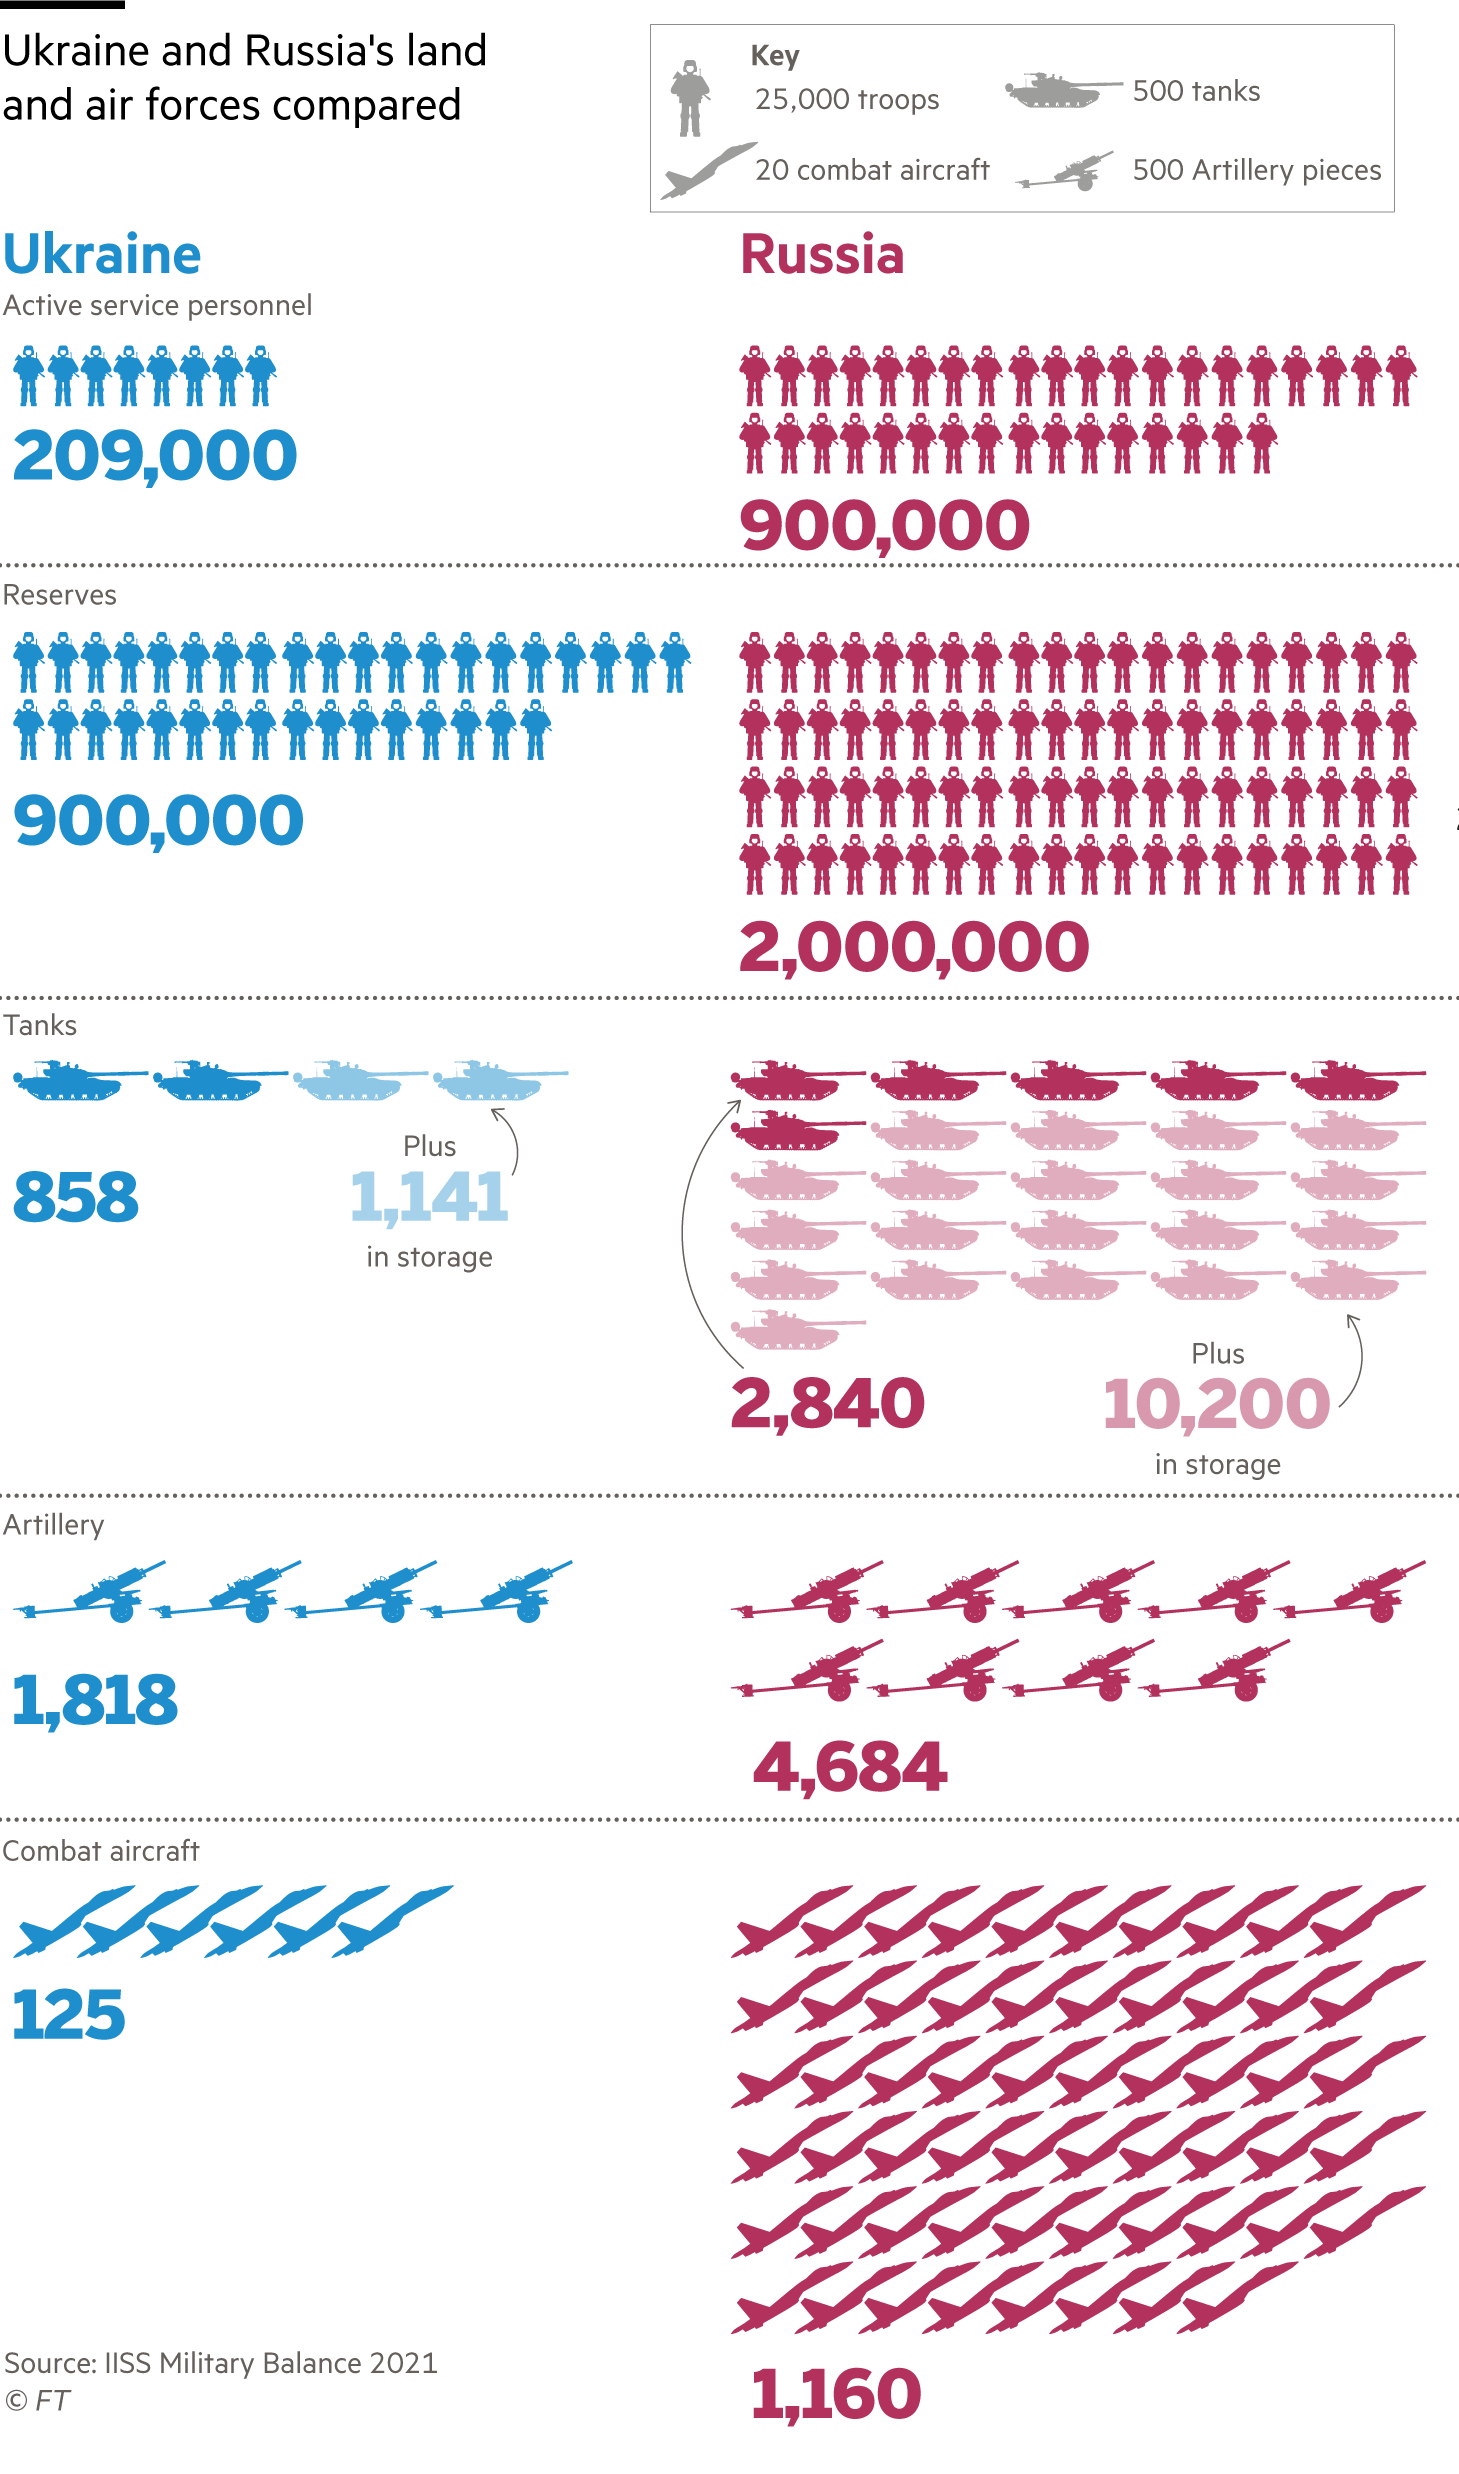 Information graphic comparing Ukraine and Russia's land and air forces